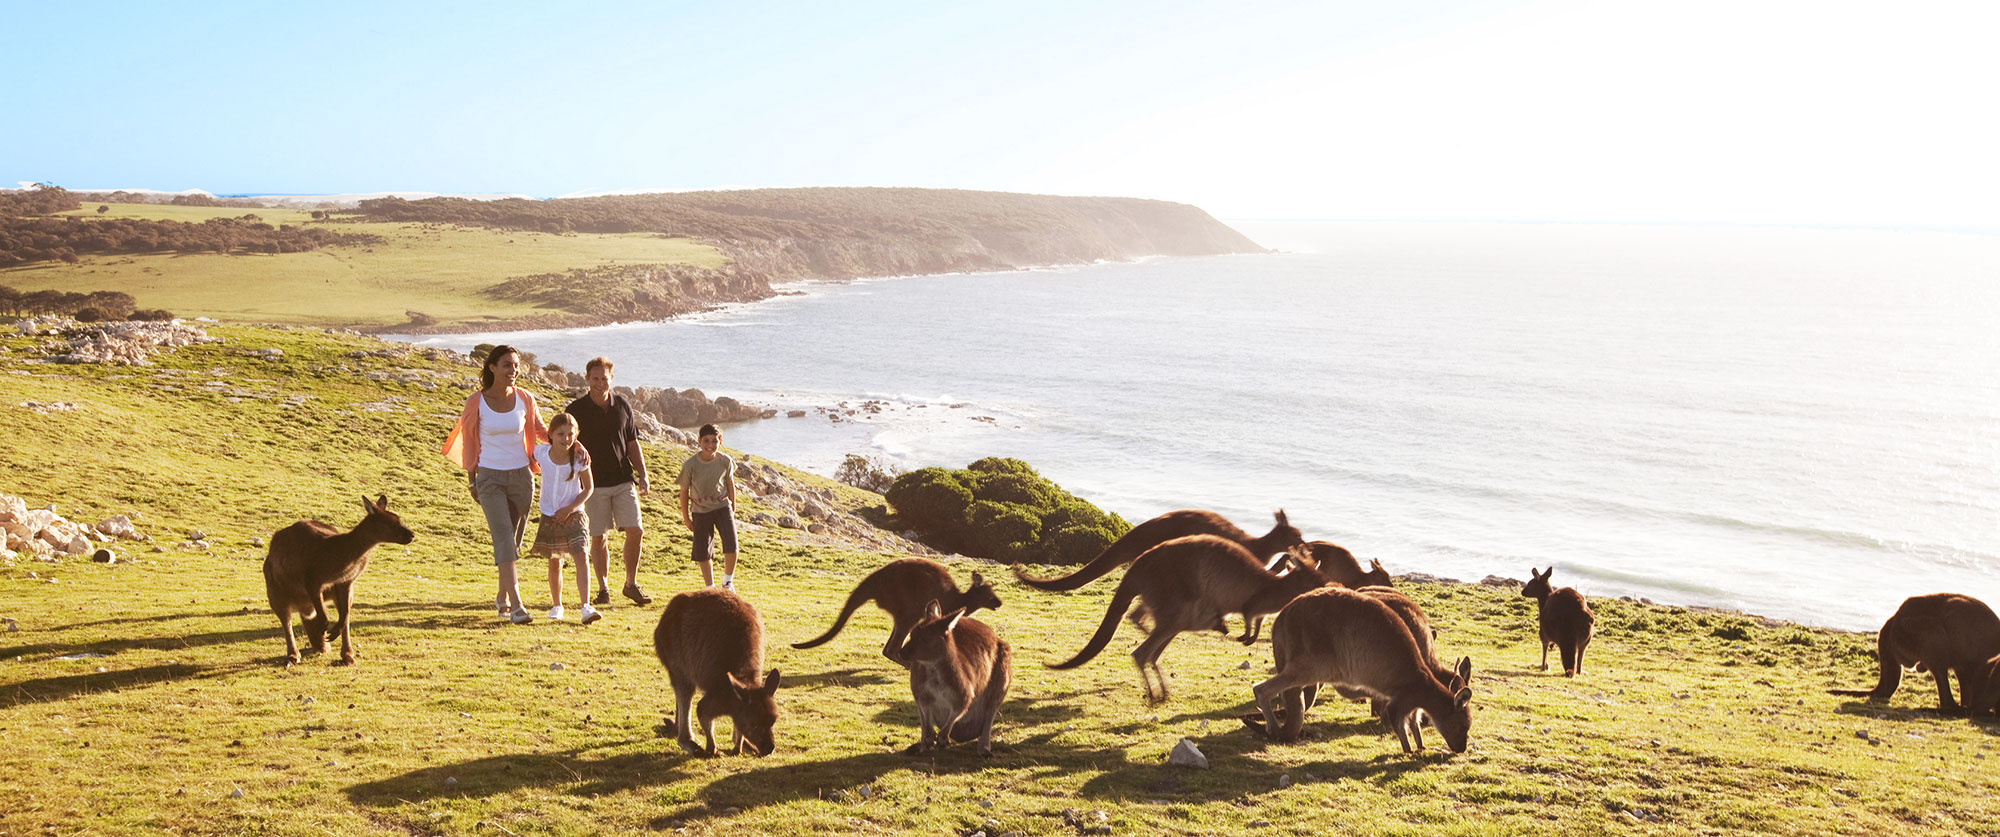 Australia family vacation ideas - family travel deals to Australia, Family Vacation Australia New Zealand best family vacation Australia